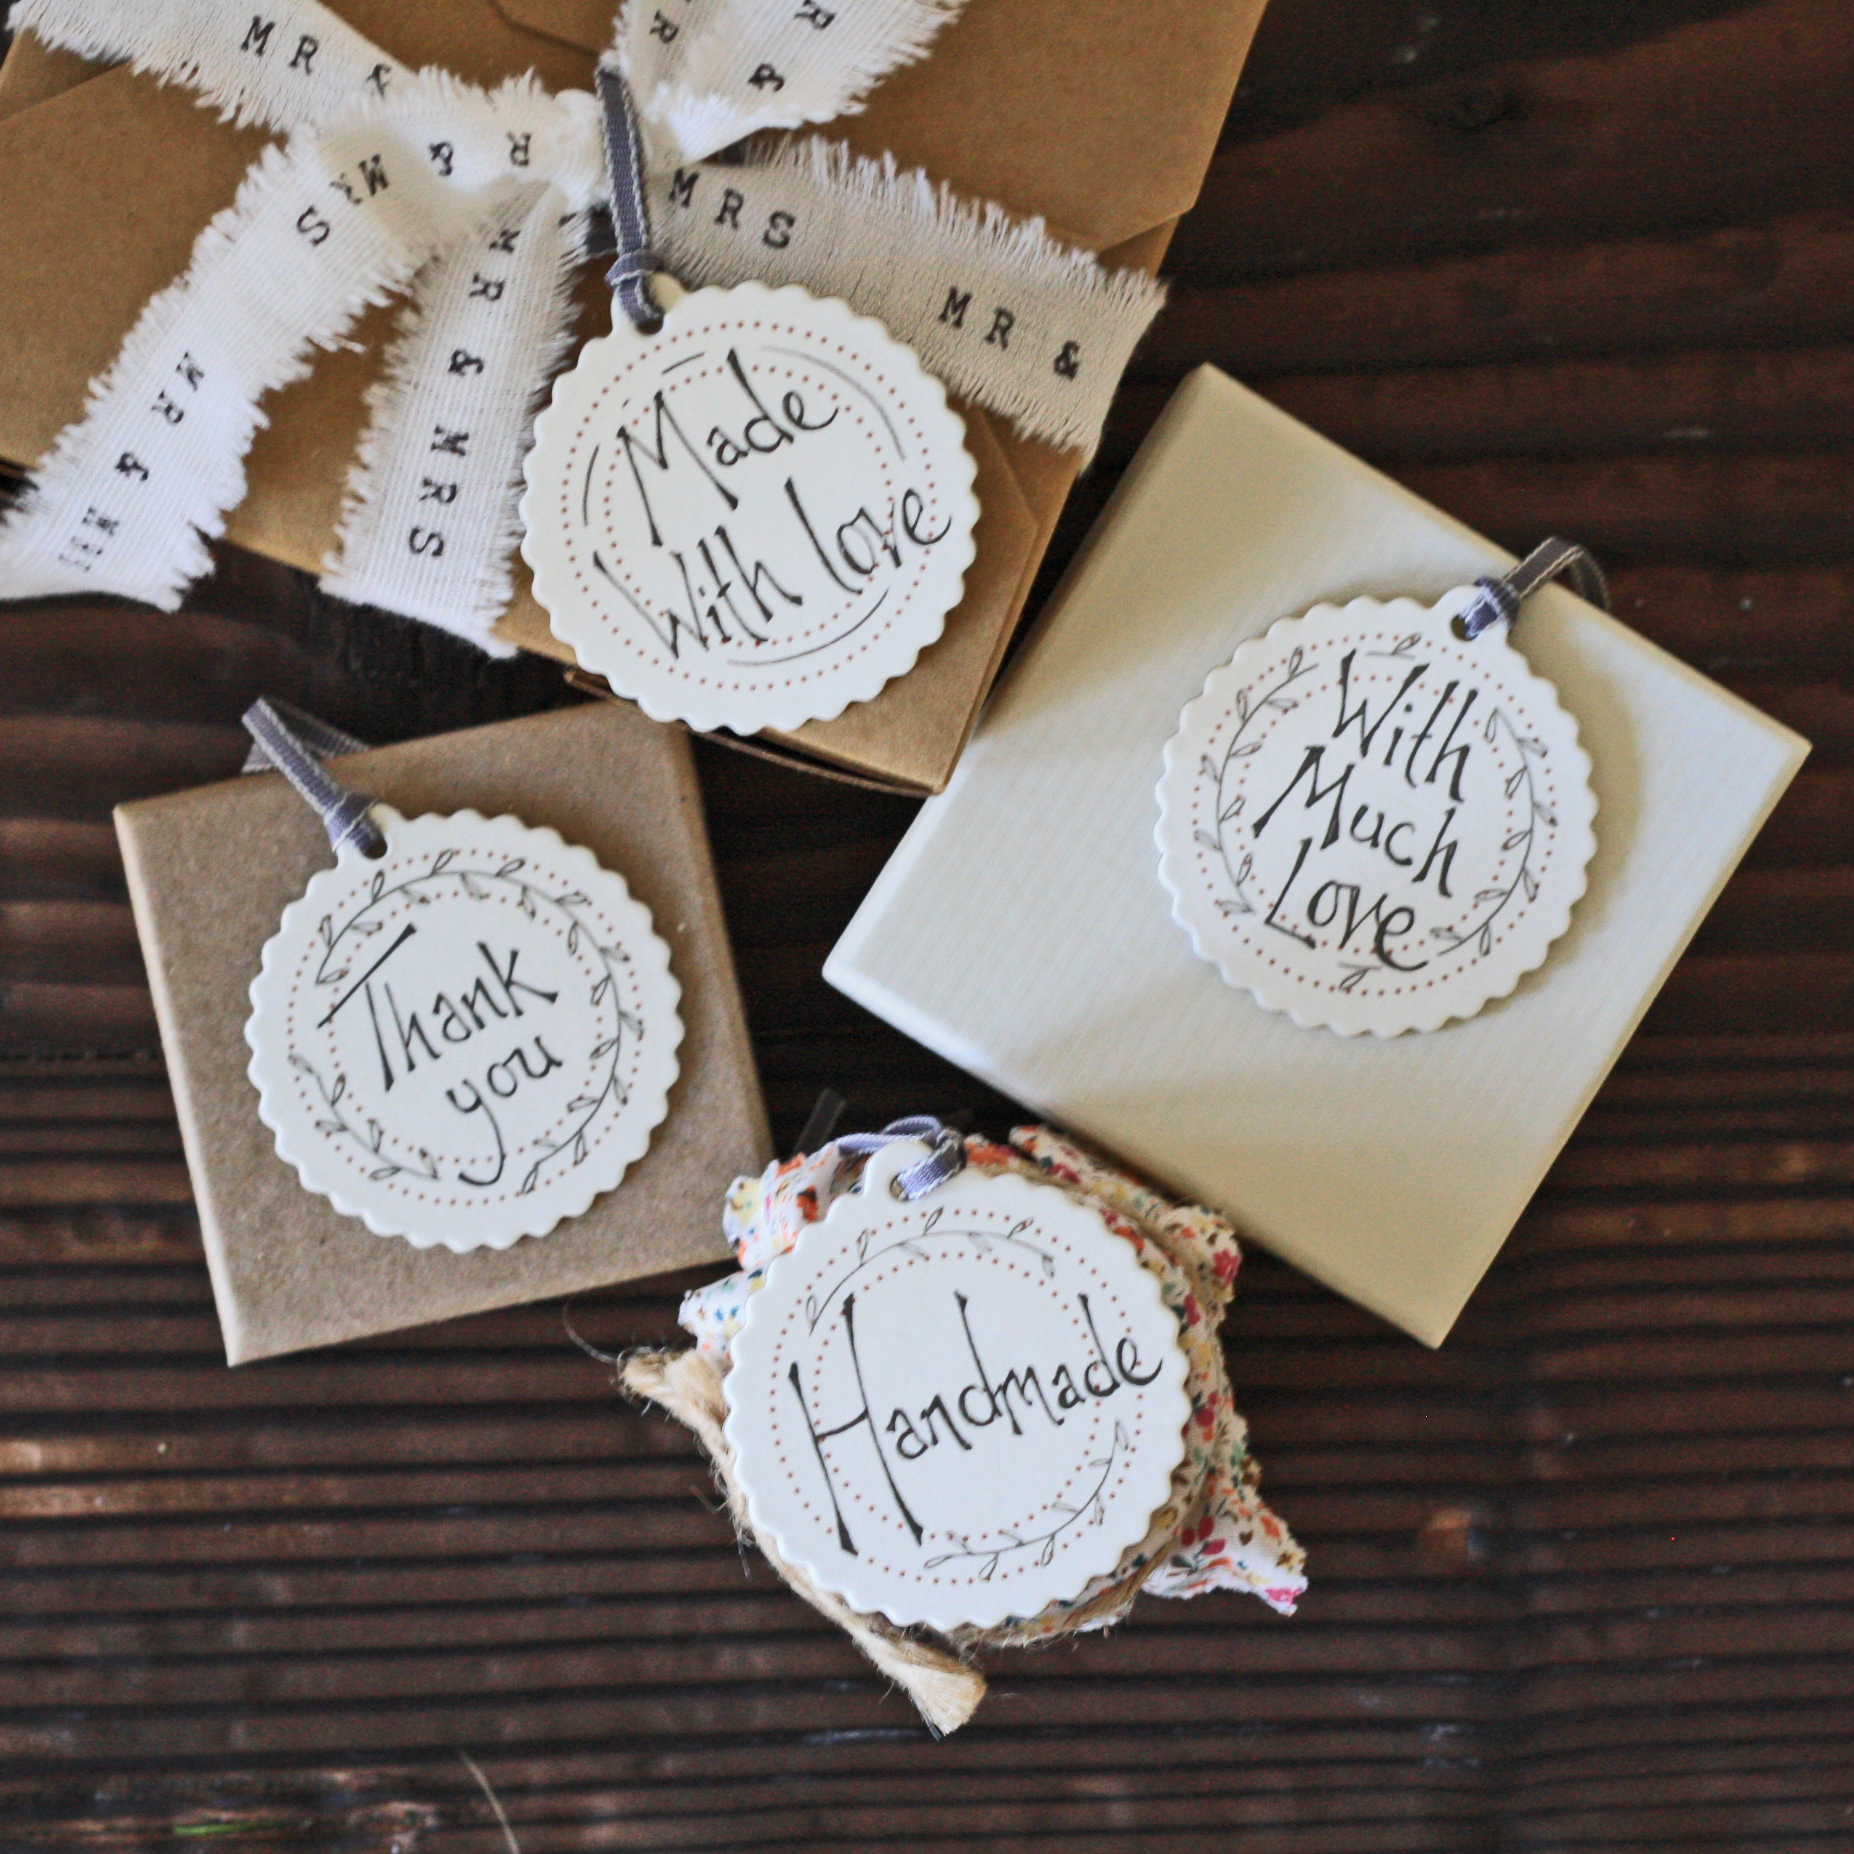 Paper bride blog page 5 the paper bride wedding stationery categories diy projects handmade gift tags solutioingenieria Choice Image